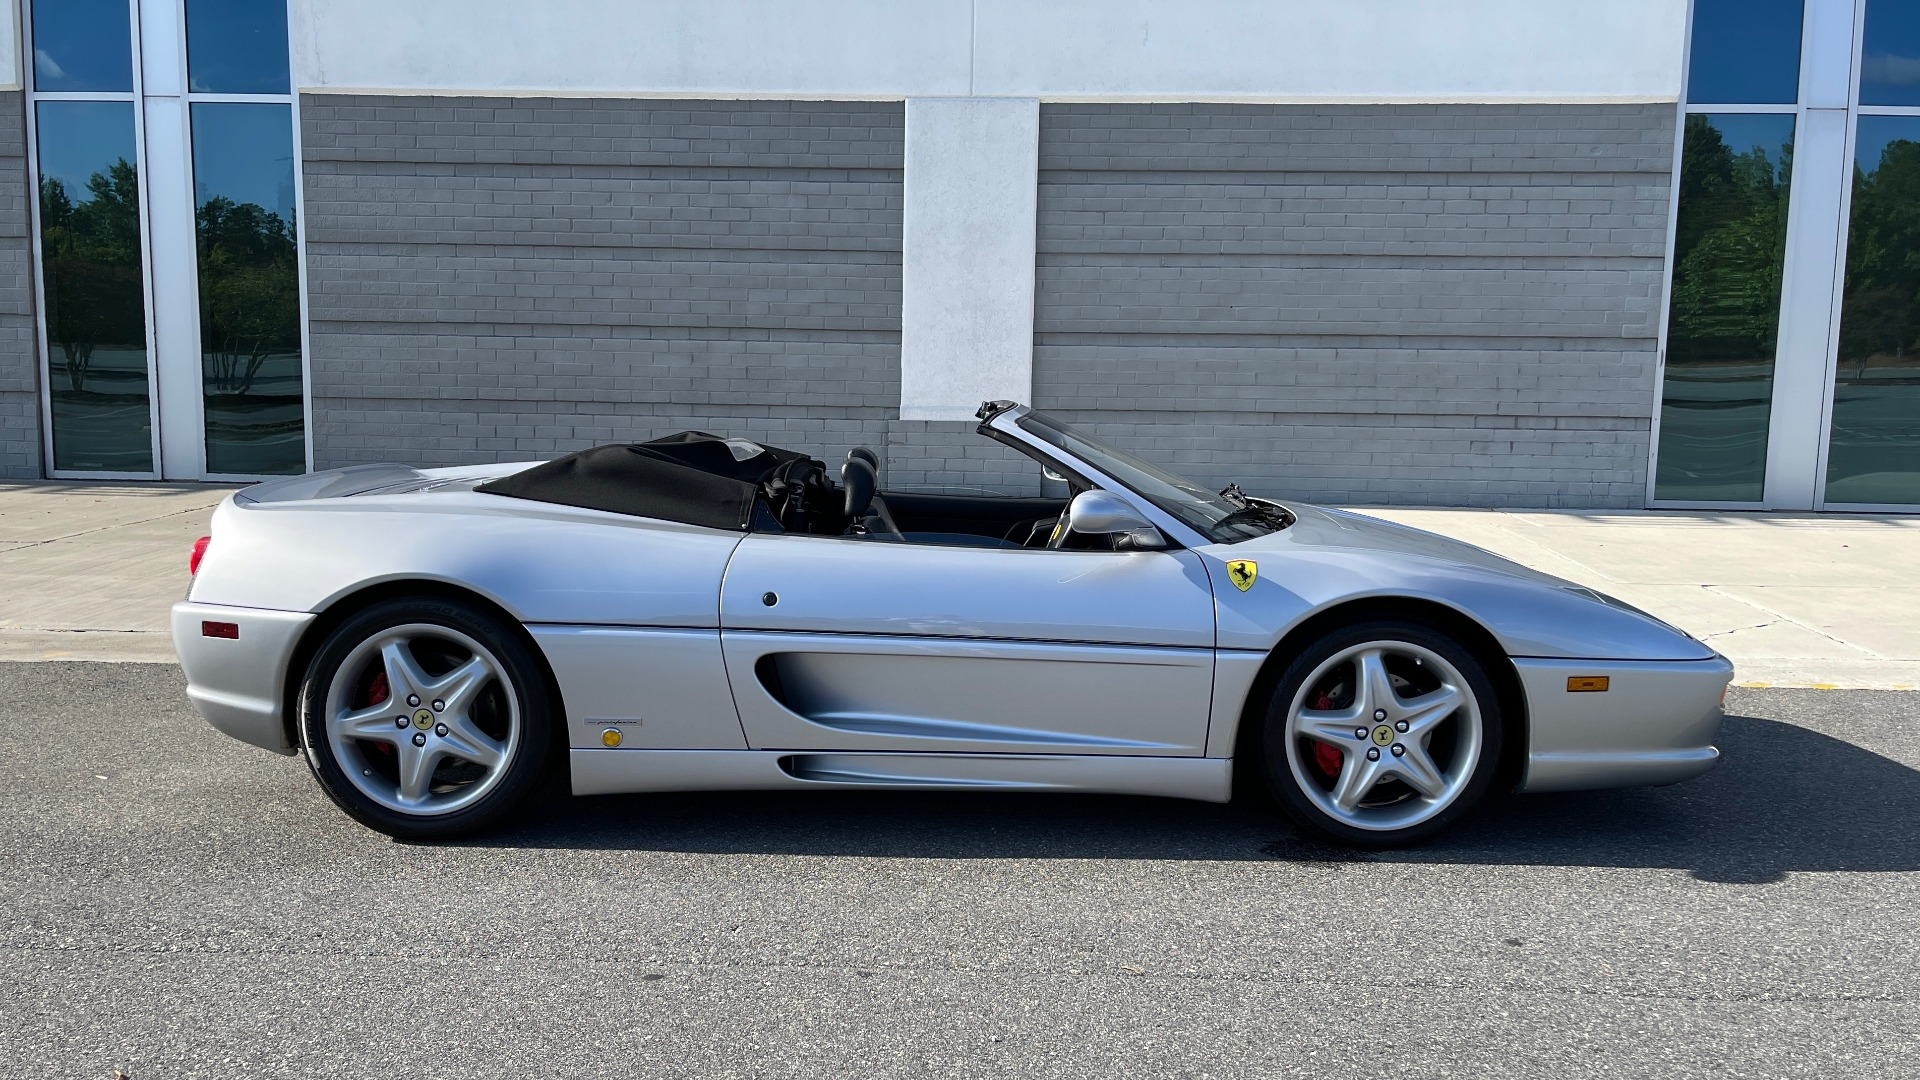 Used 1999 Ferrari F355 SPIDER for sale $95,000 at Formula Imports in Charlotte NC 28227 4